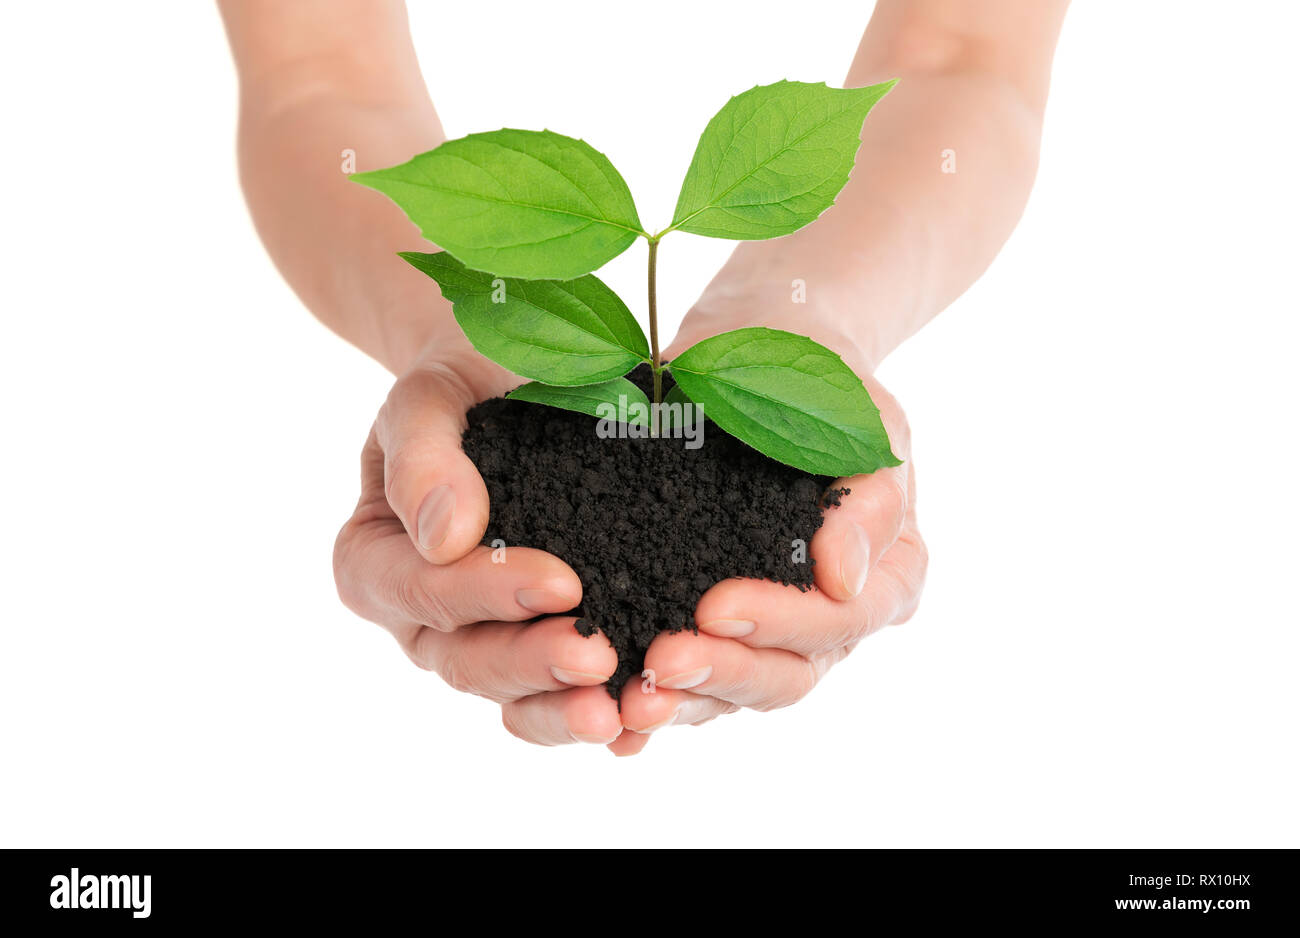 Hands holding green plant new life concept - Stock Image